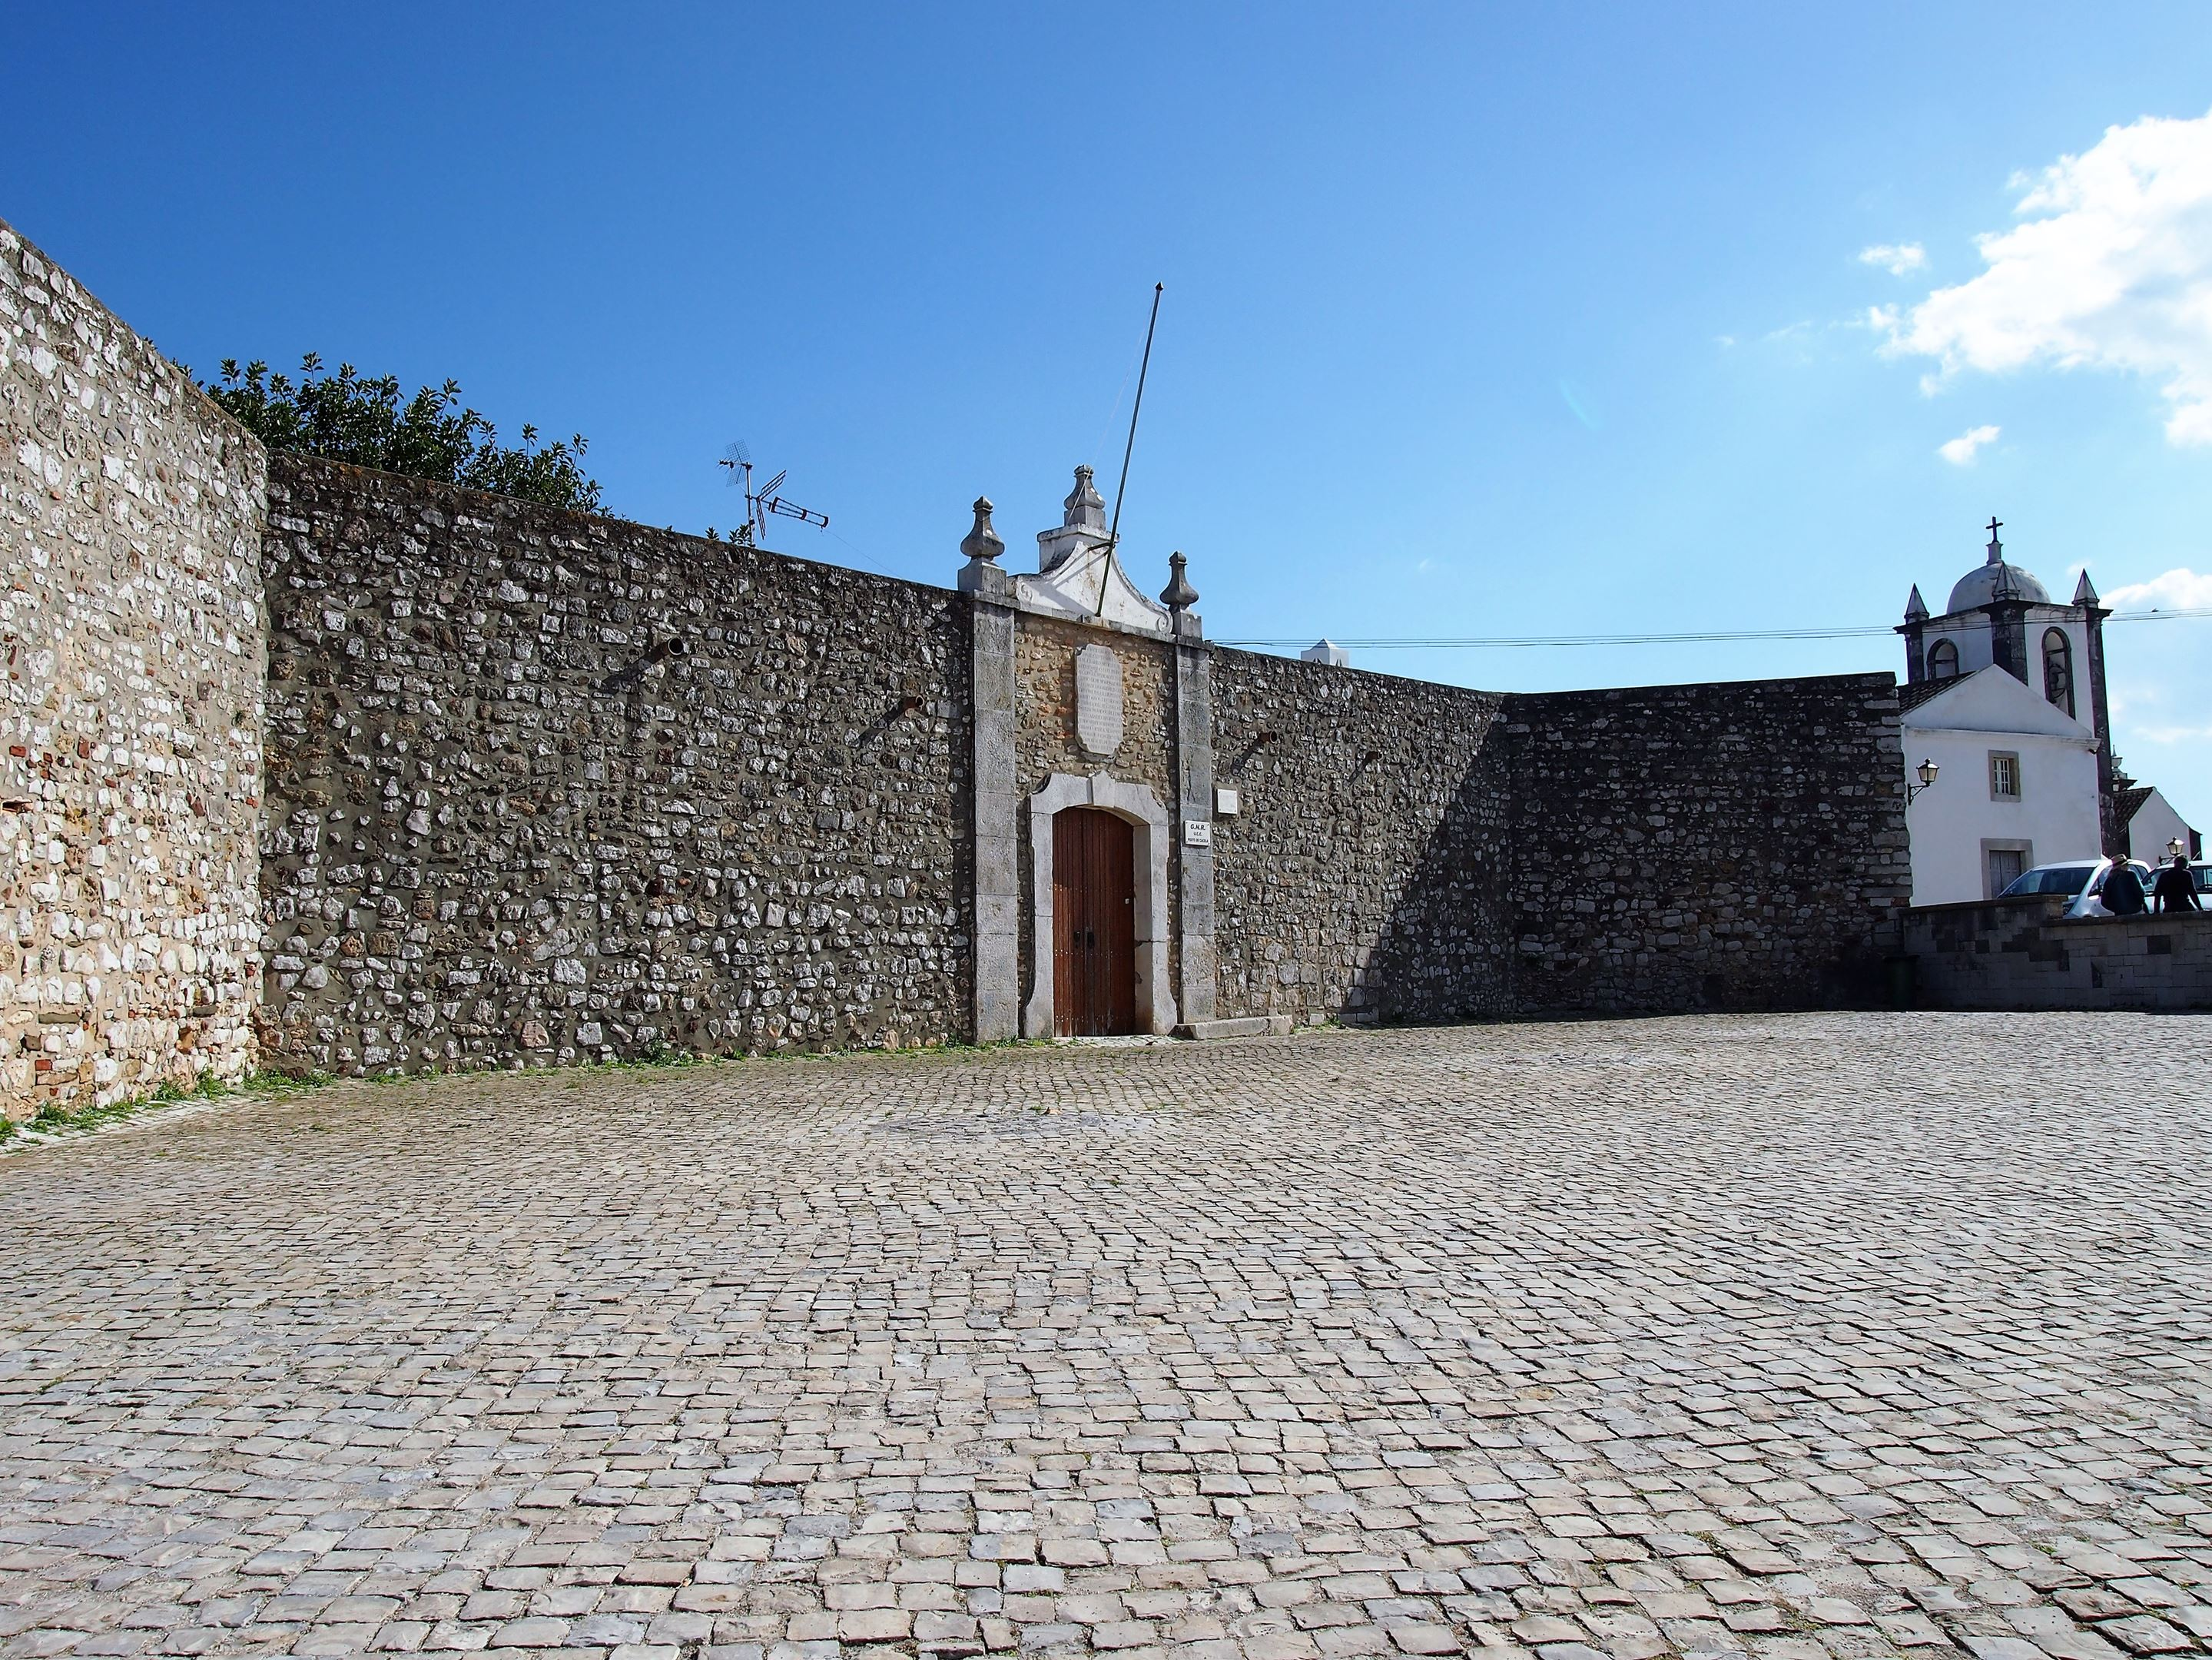 Fortaleza de Cacela, the fort at Cacela Velha. Unfortunately closed as it provides office for the GNR (lucky them!)